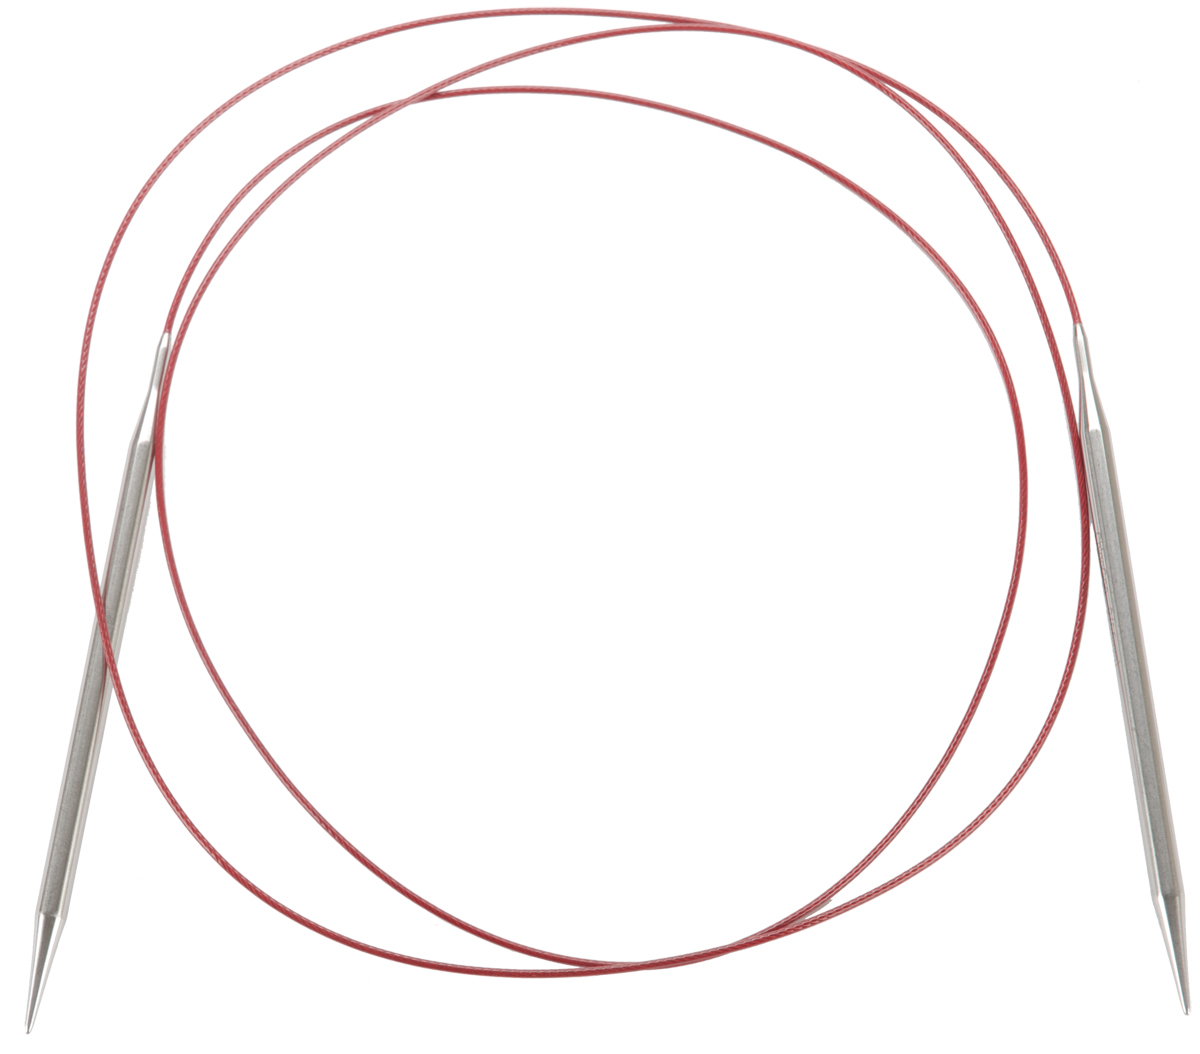 ChiaoGoo 32-Inch Red Lace Stainless Steel Circular Knitting Needles 3//3.25mm